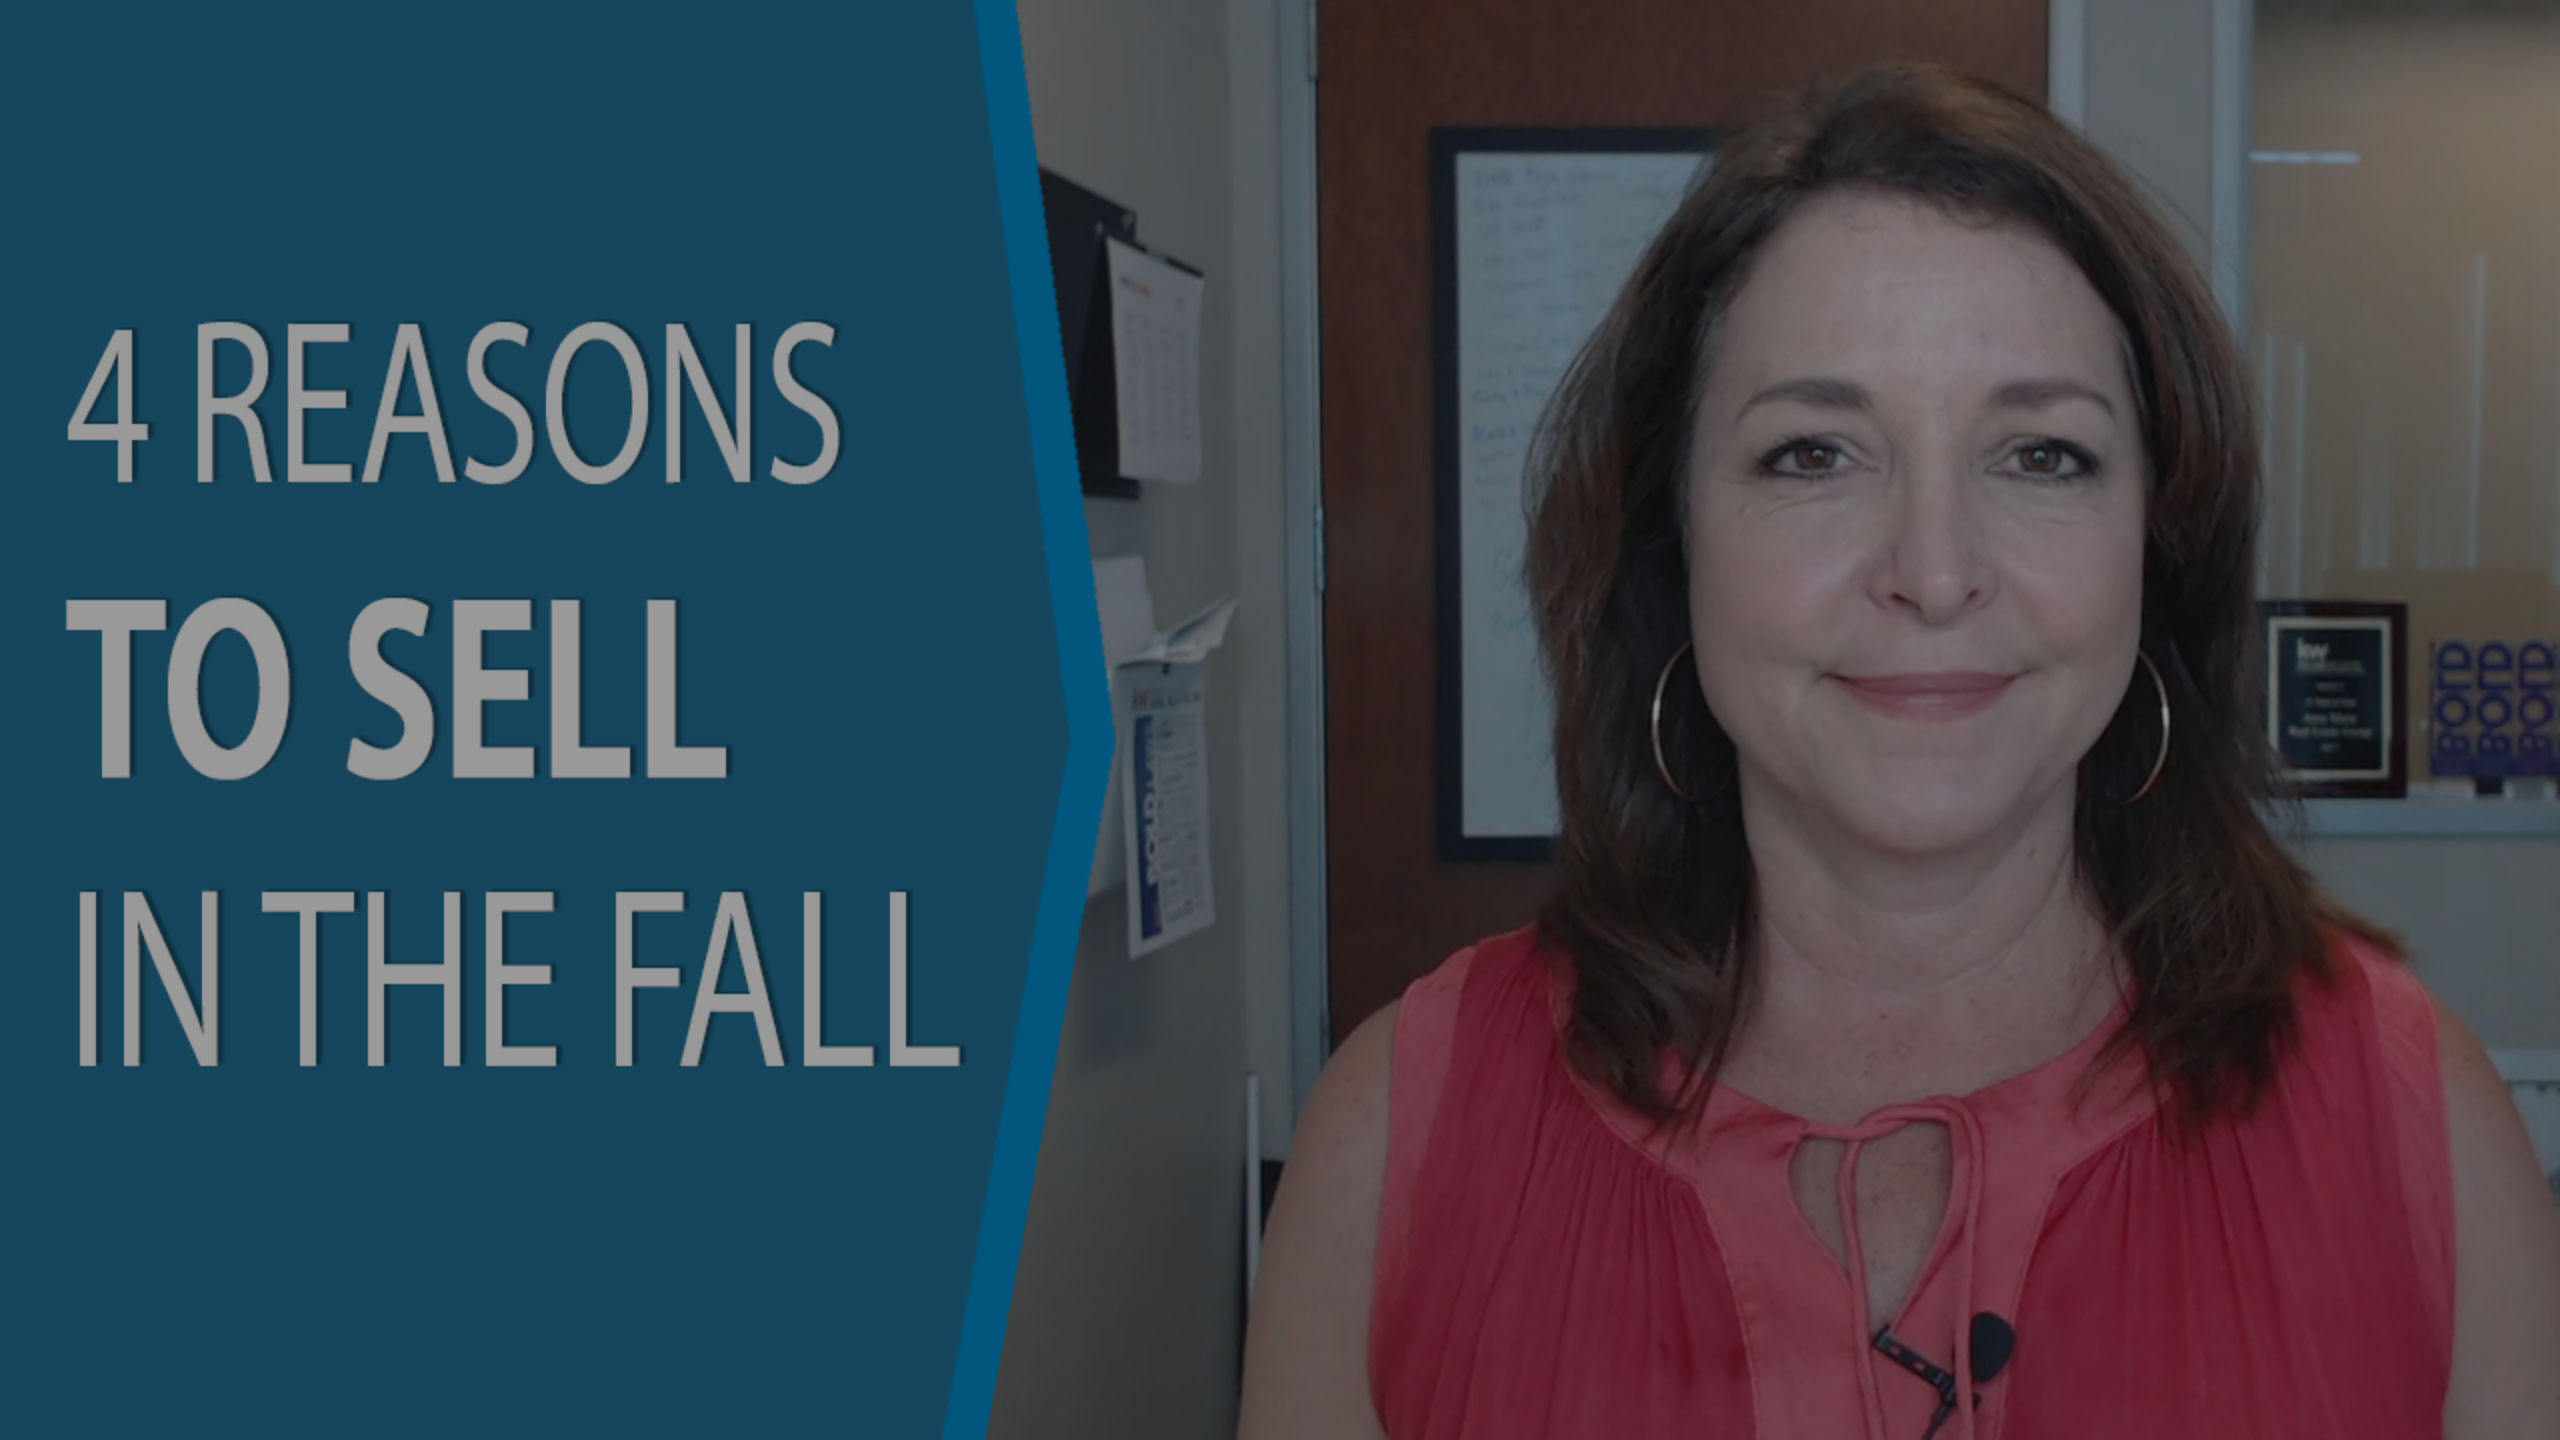 The Top 4 Reasons Fall Is a Great Time to Sell